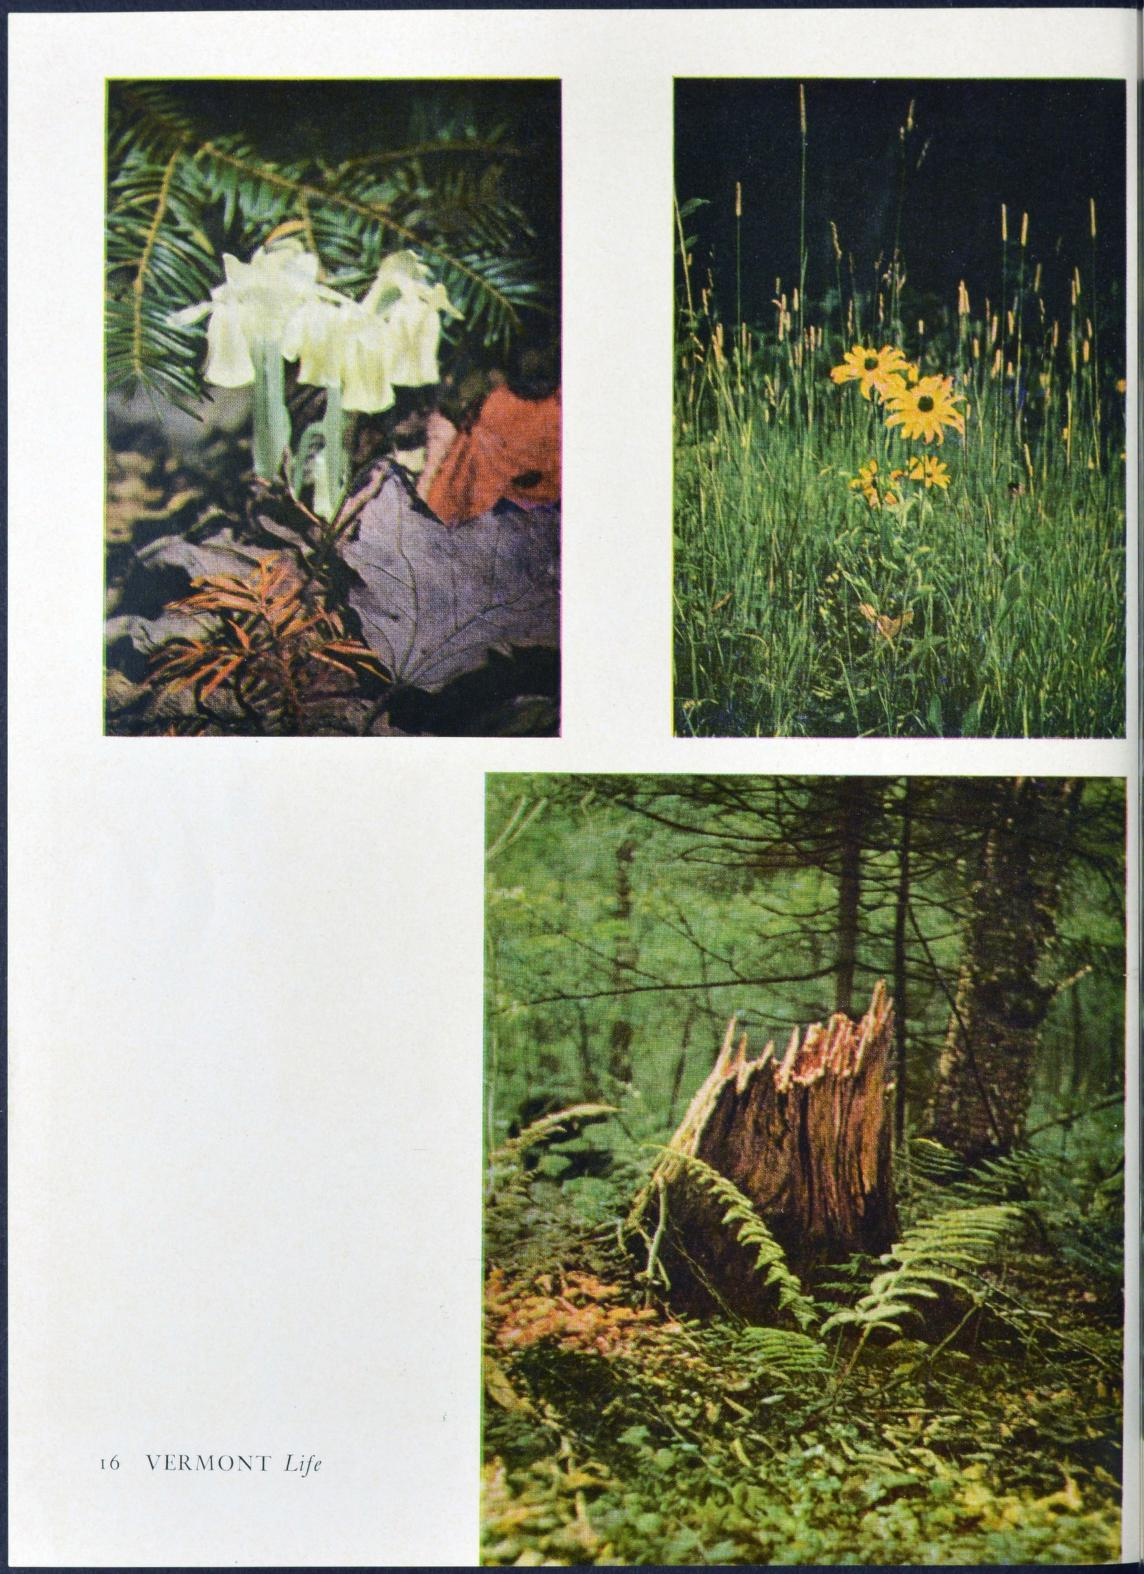 - Vermont Department of Tourism and Marketing. Vermont Life. Montpelier: Vermont Development Commission. A quarterly publication available from Internet Archive here.